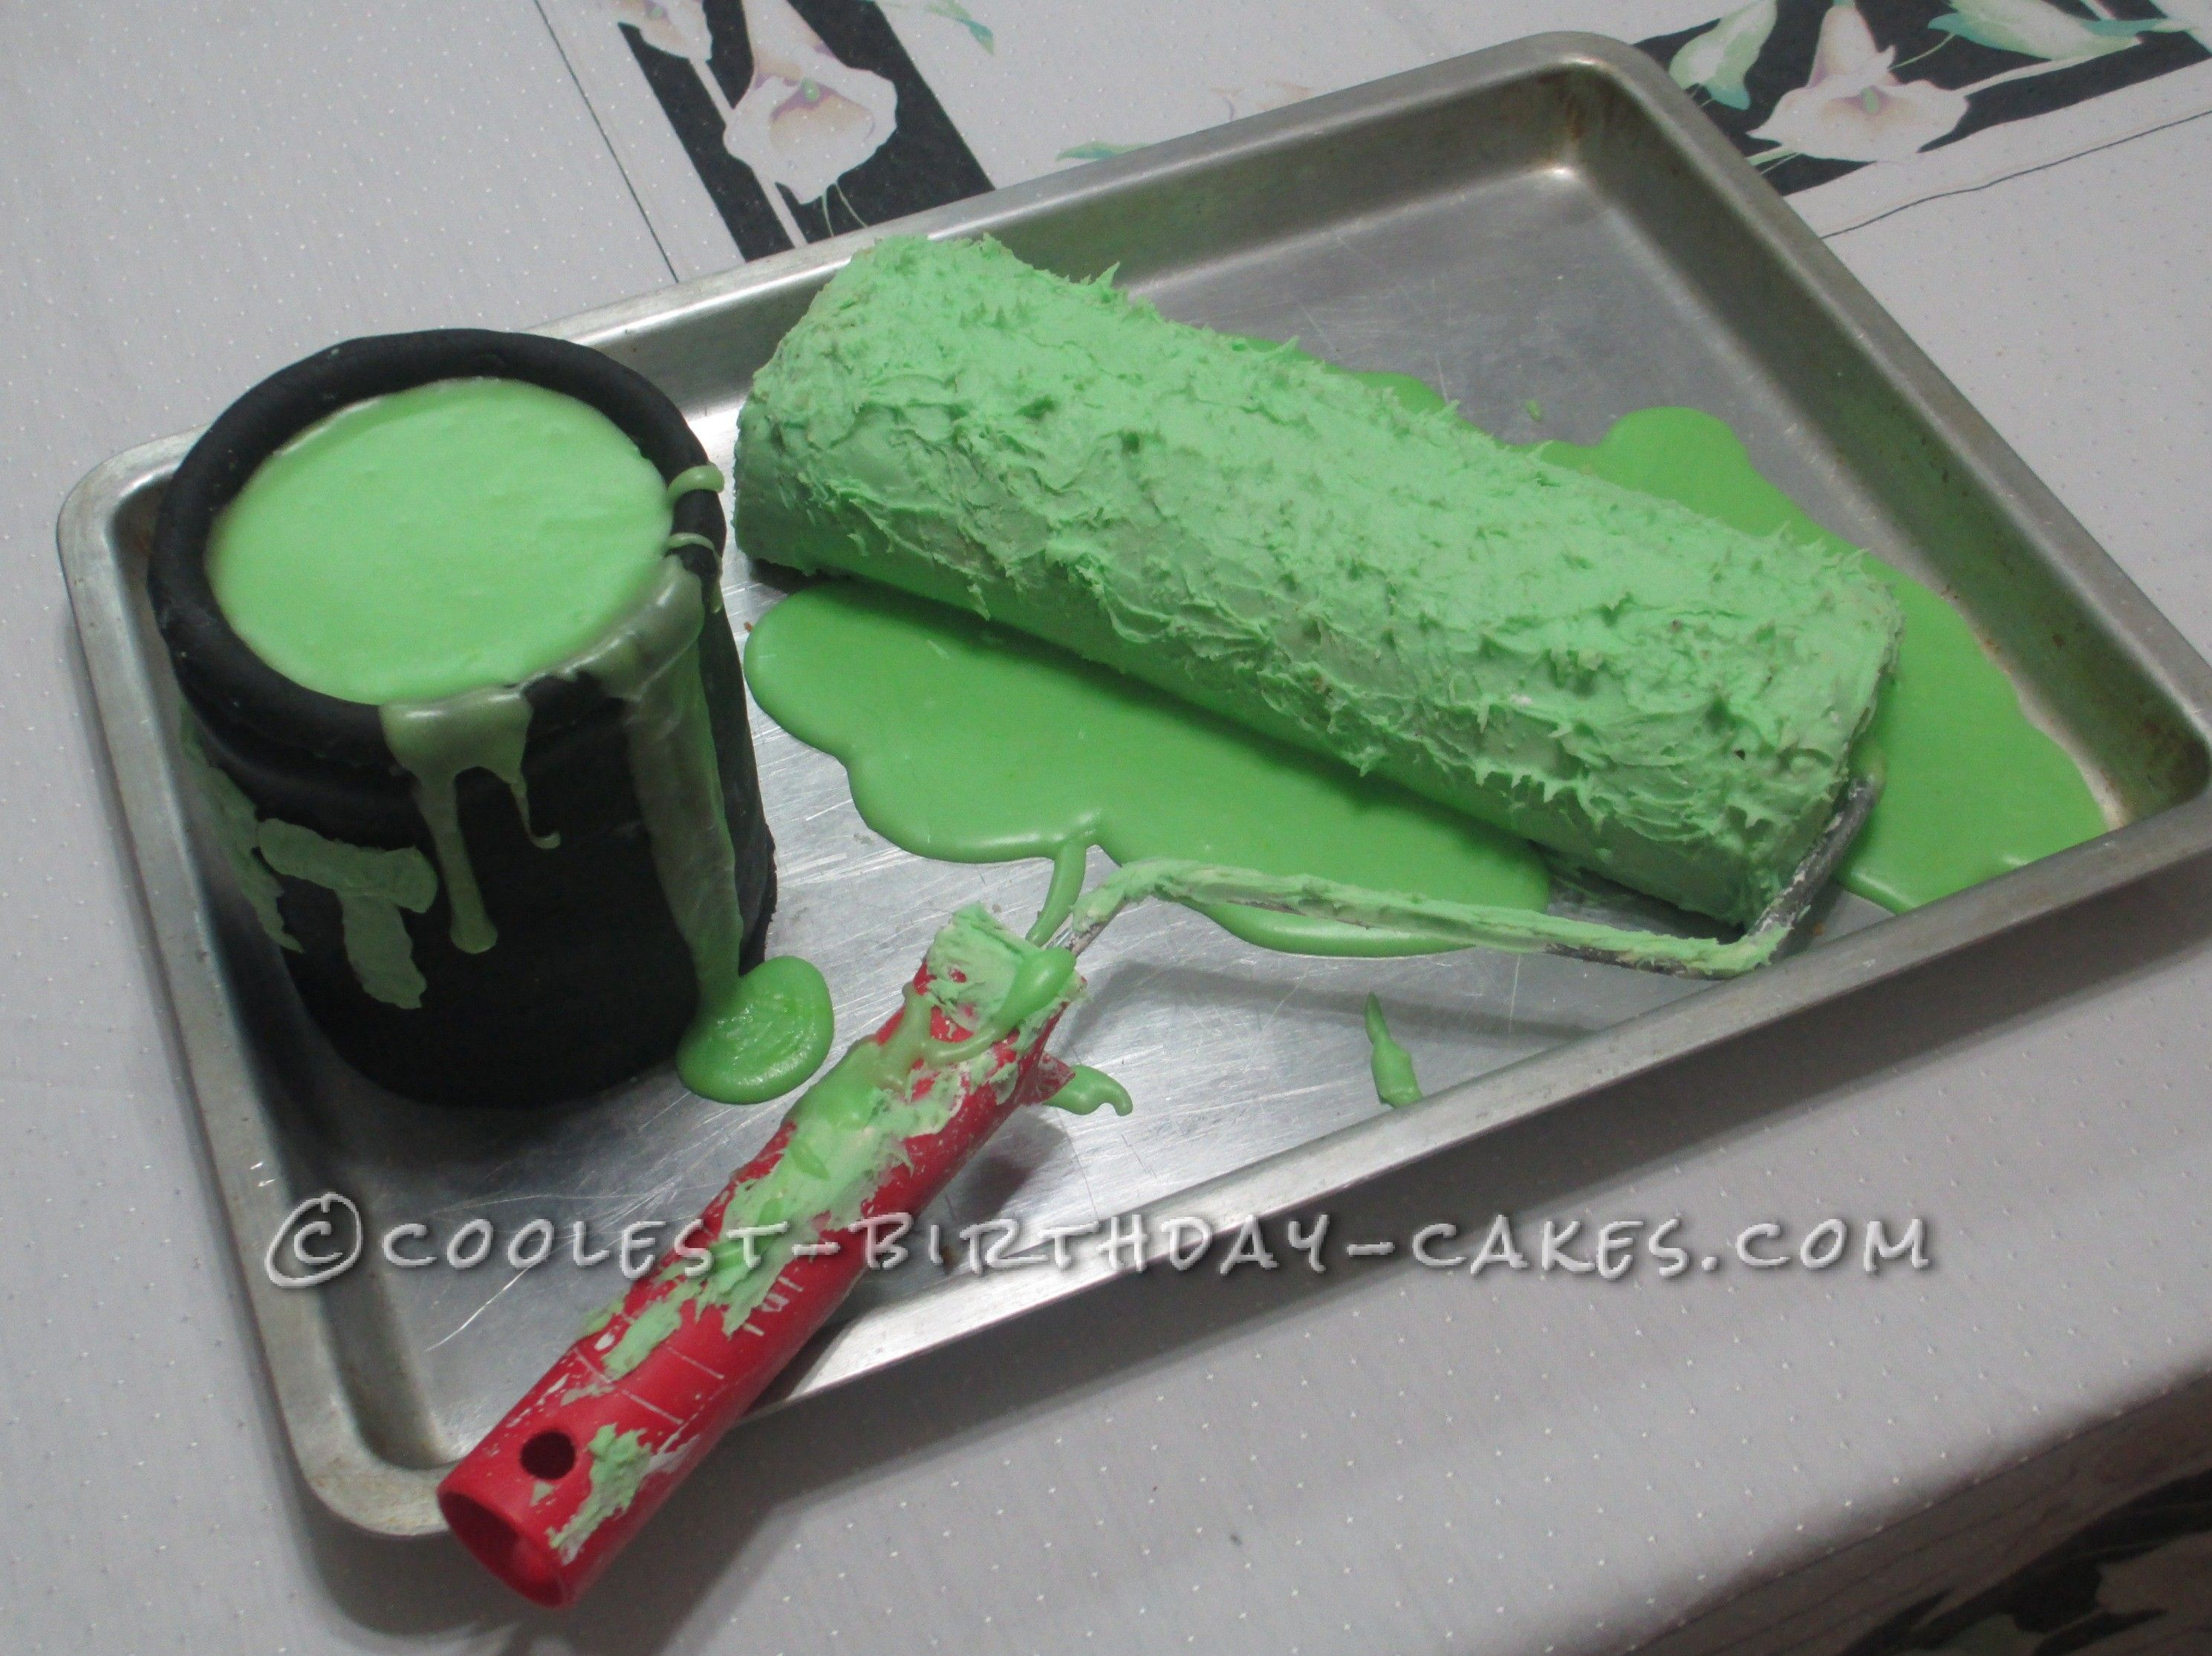 A Birthday Cake That Looks Like a Real Paint Roller!... This website is the Pinterest of birthday cake ideas